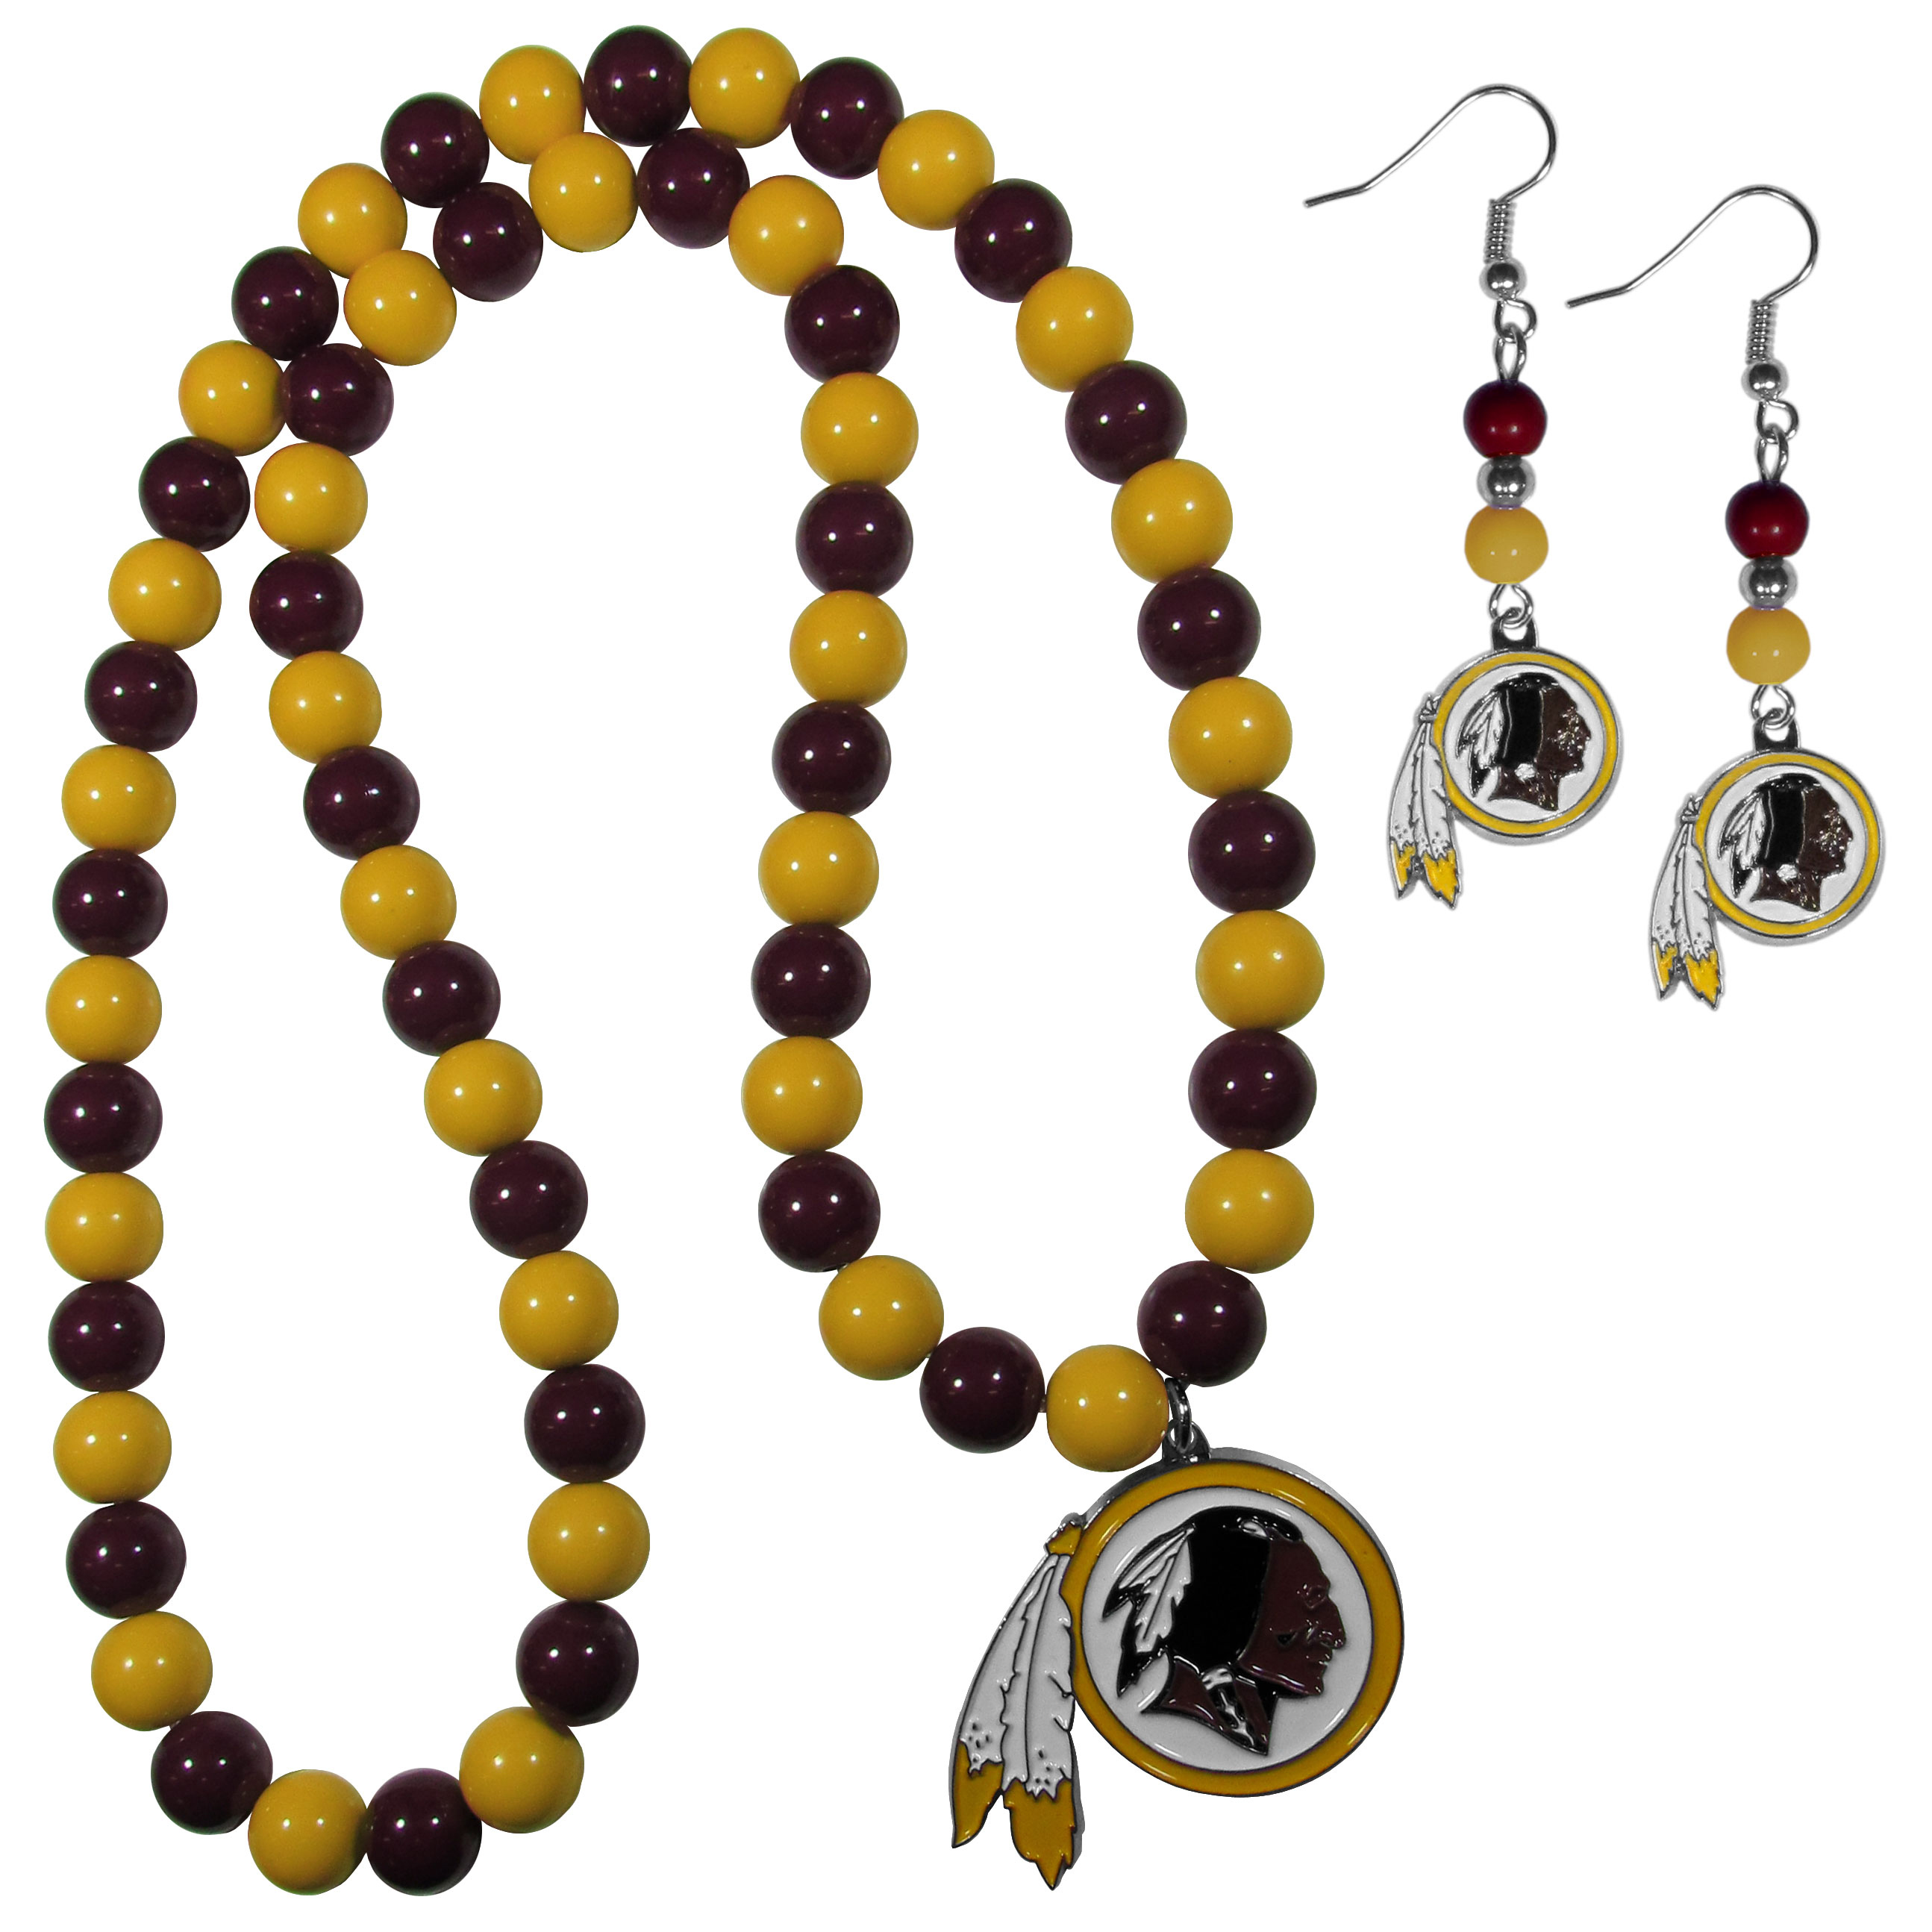 Washington Redskins Fan Bead Earrings and Necklace Set - These fun and colorful Washington Redskins fan bead jewelry pieces are an eyecatching way to show off your team spirit. The earrings feature hypoallergenic, nickel free fishhook post and 2 team colored beads with a beautifully carved team charm to finish this attractive dangle look. The mathcing bracelet has alternating team colored beads on a stretch cord and features a matching team charm.